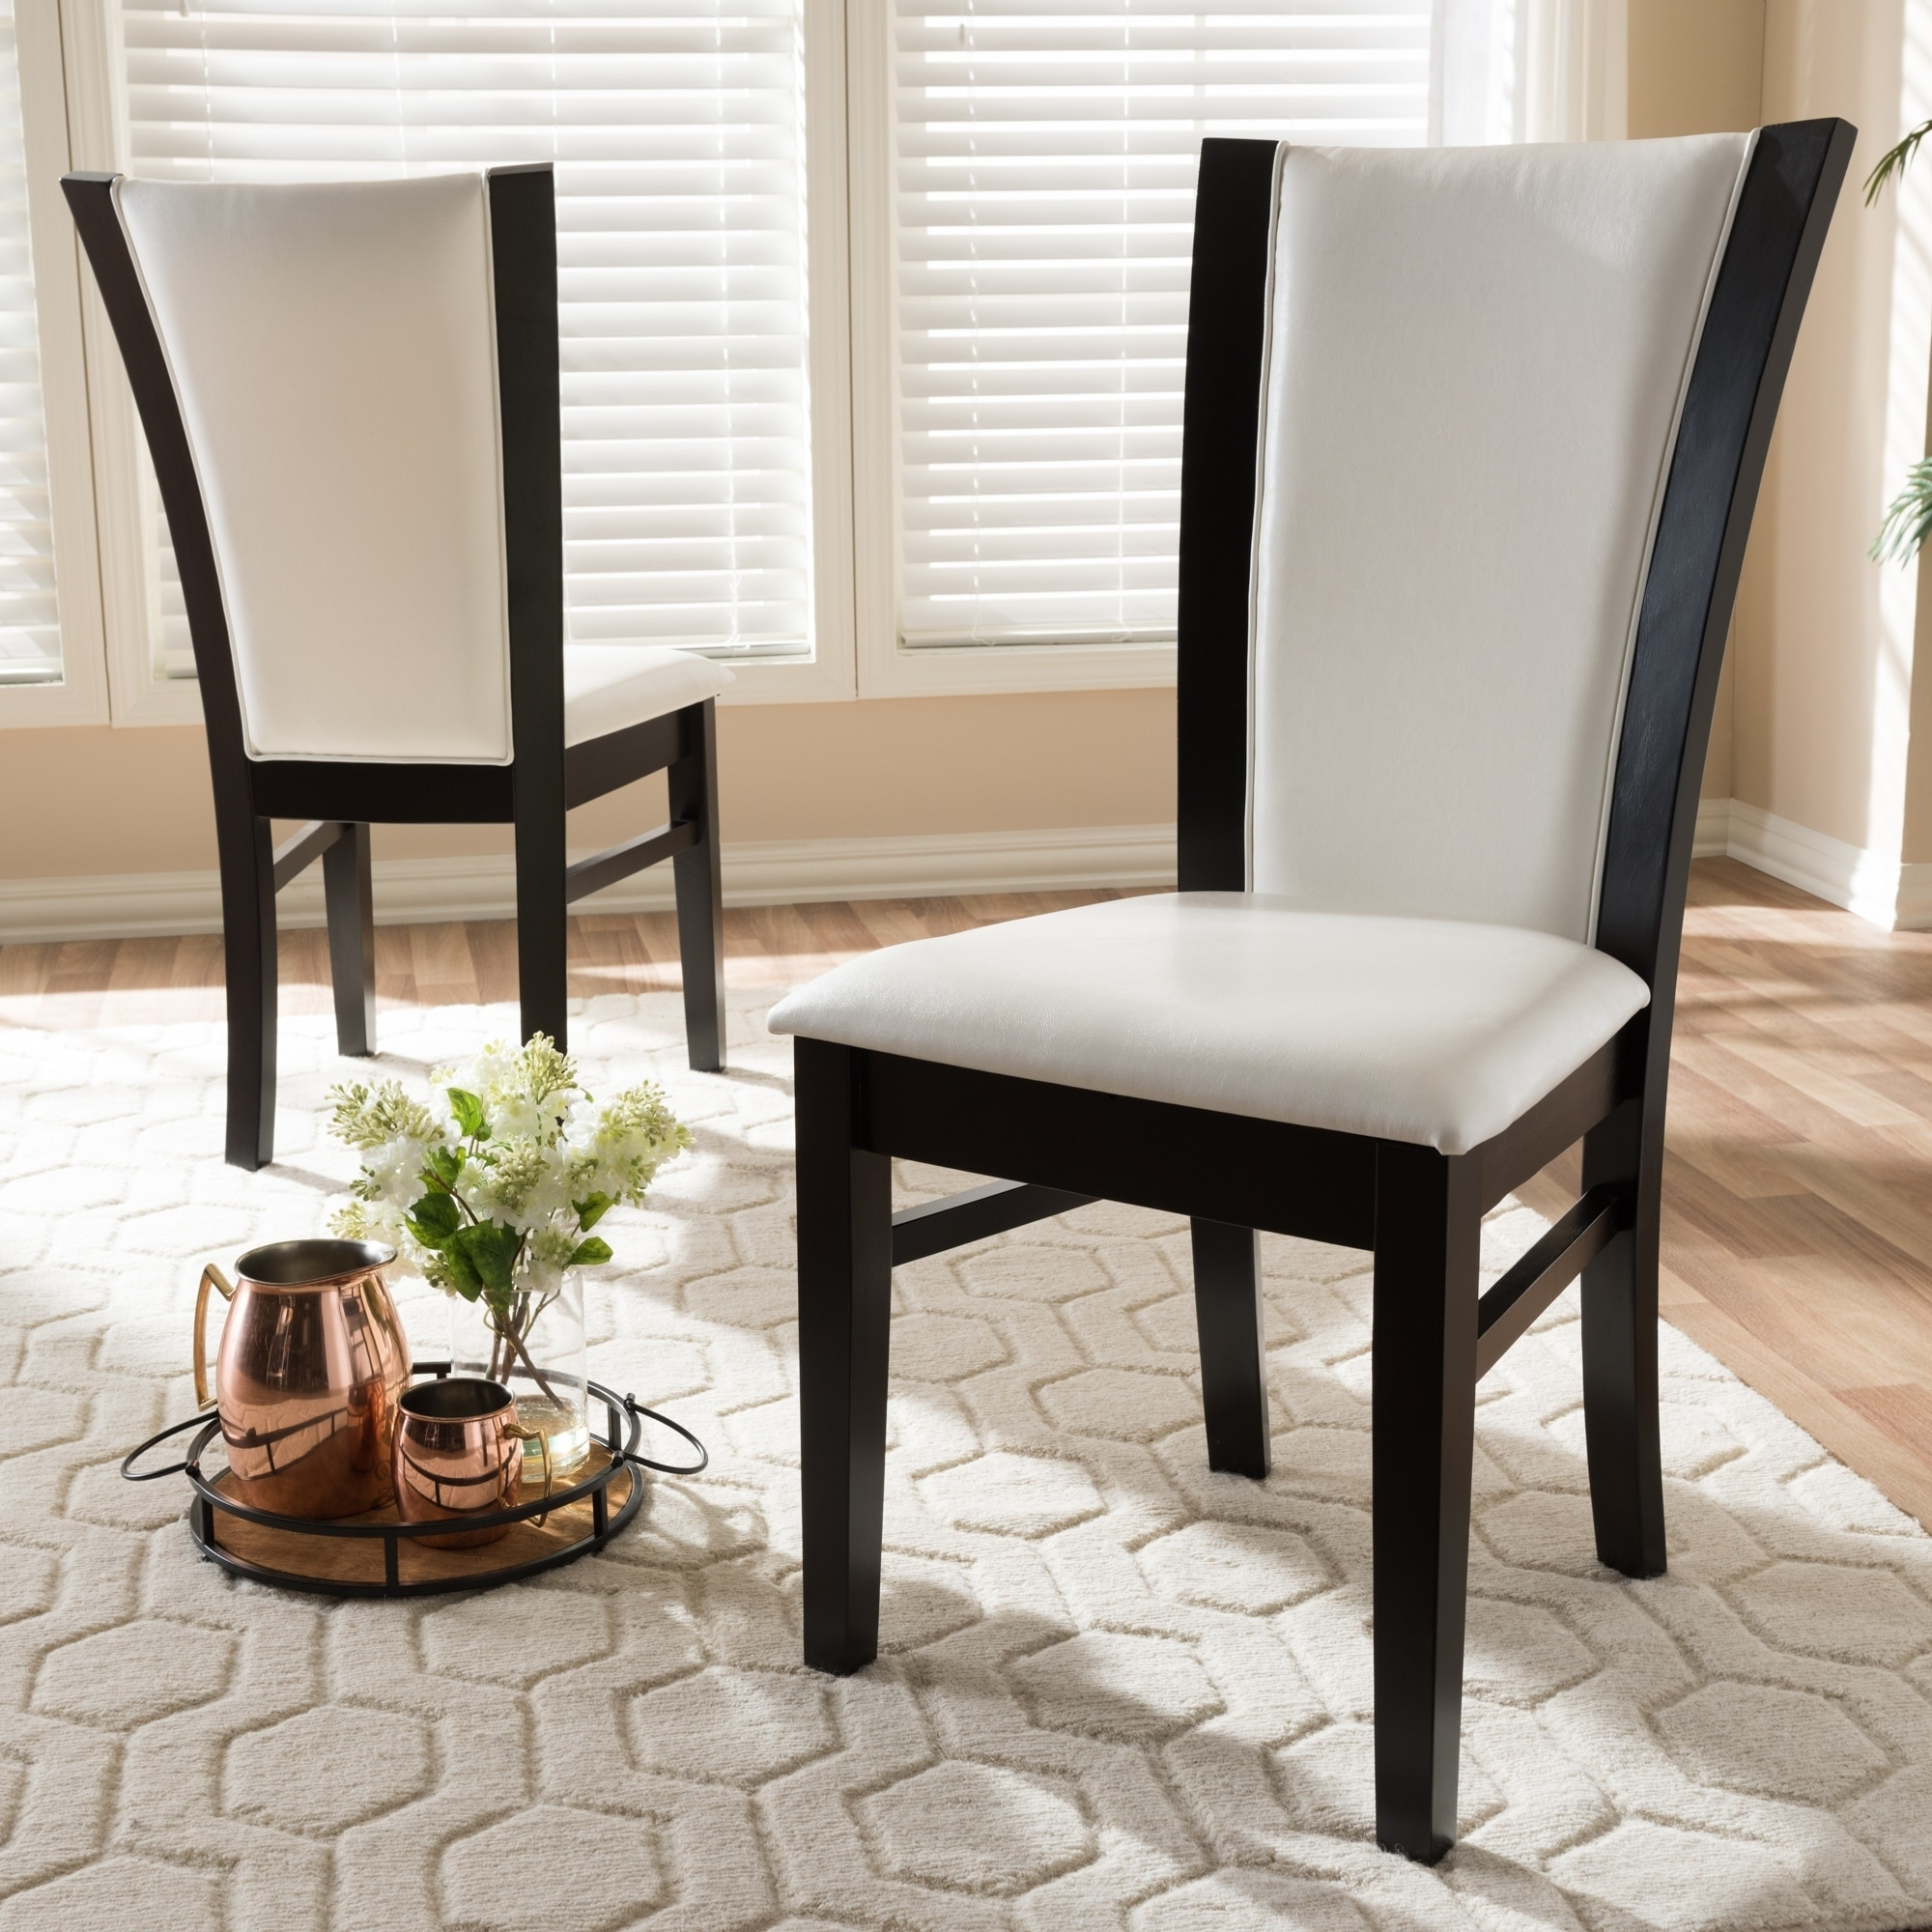 Shop Contemporary White Faux Leather Dining Chair Set By Baxton